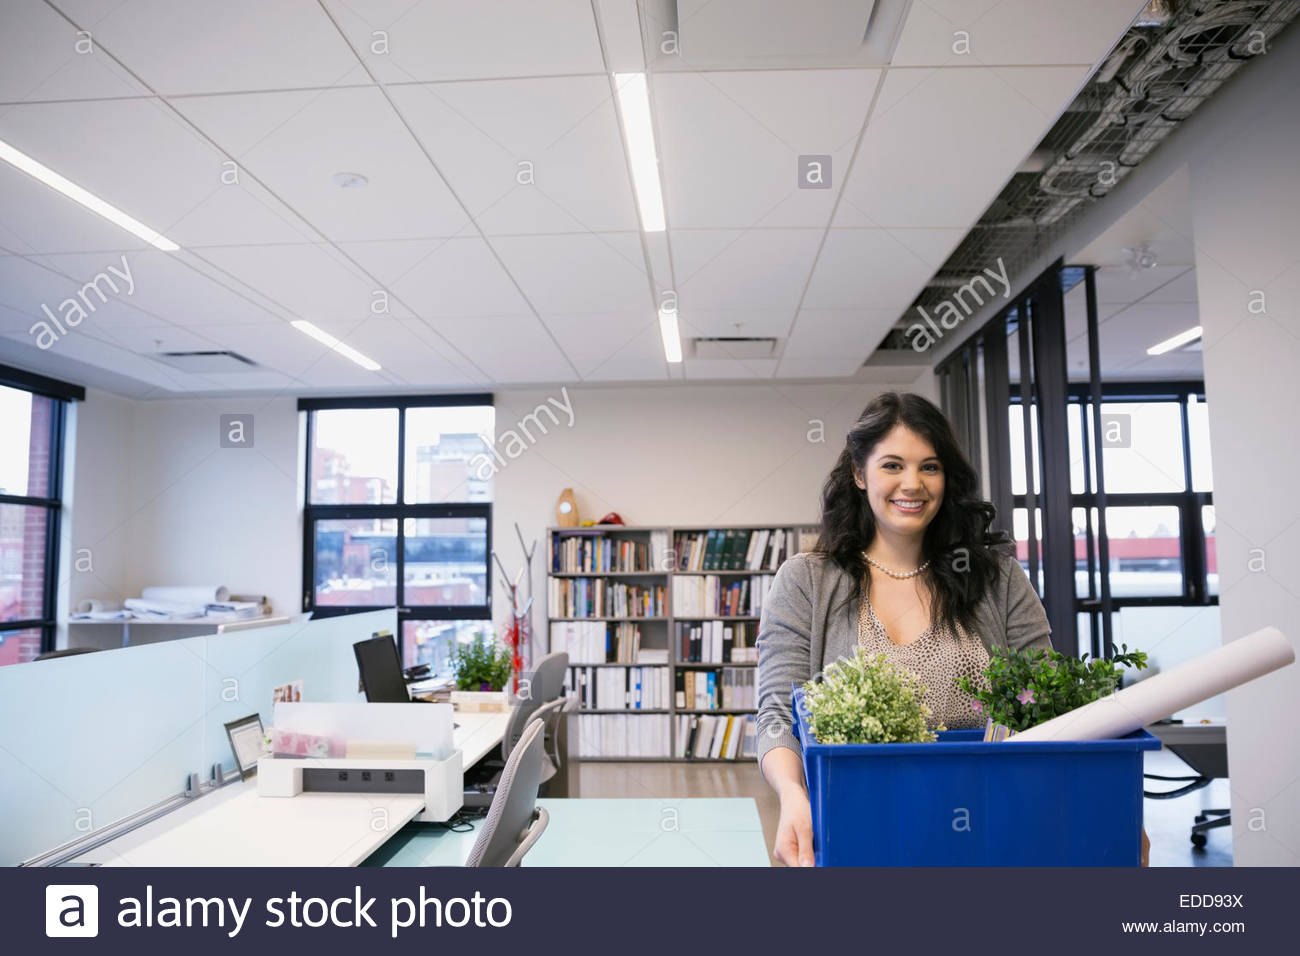 Portrait of smiling businesswoman carrying belongings in office - Stock Image